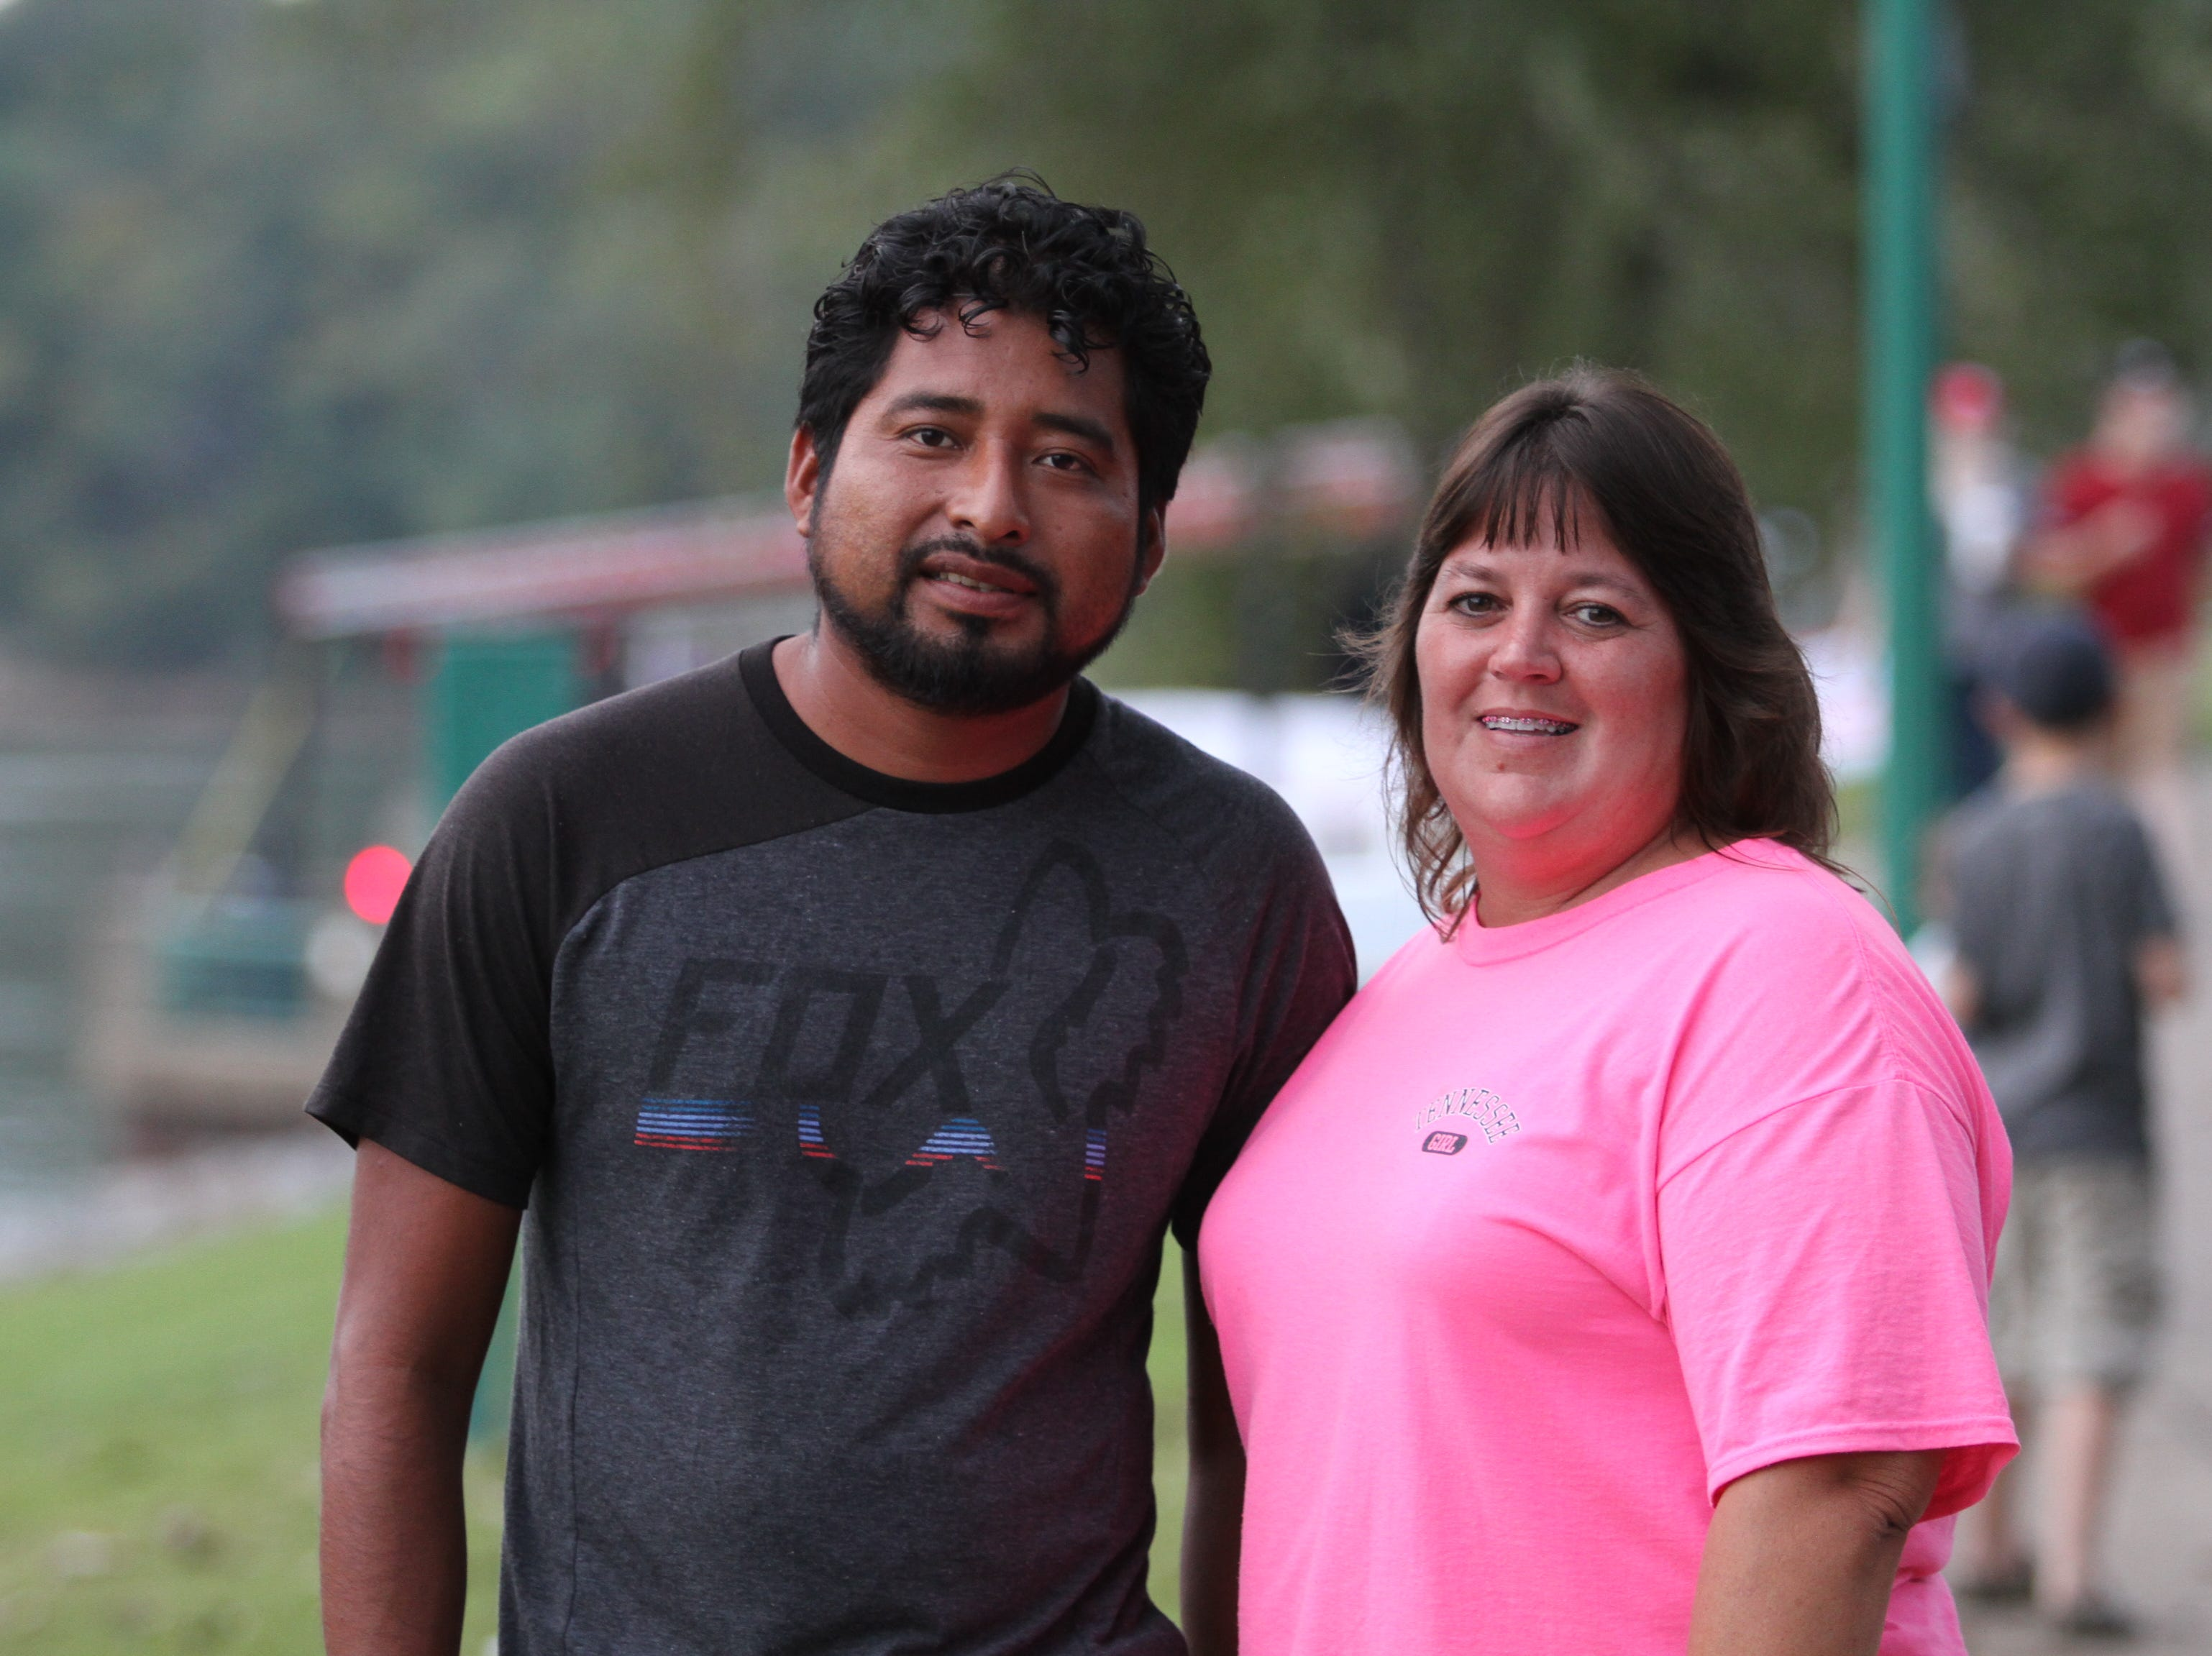 Reynaldo Salinas and Gina Bell at Clarksville Riverfest on Friday night, Sept. 7, 2018.